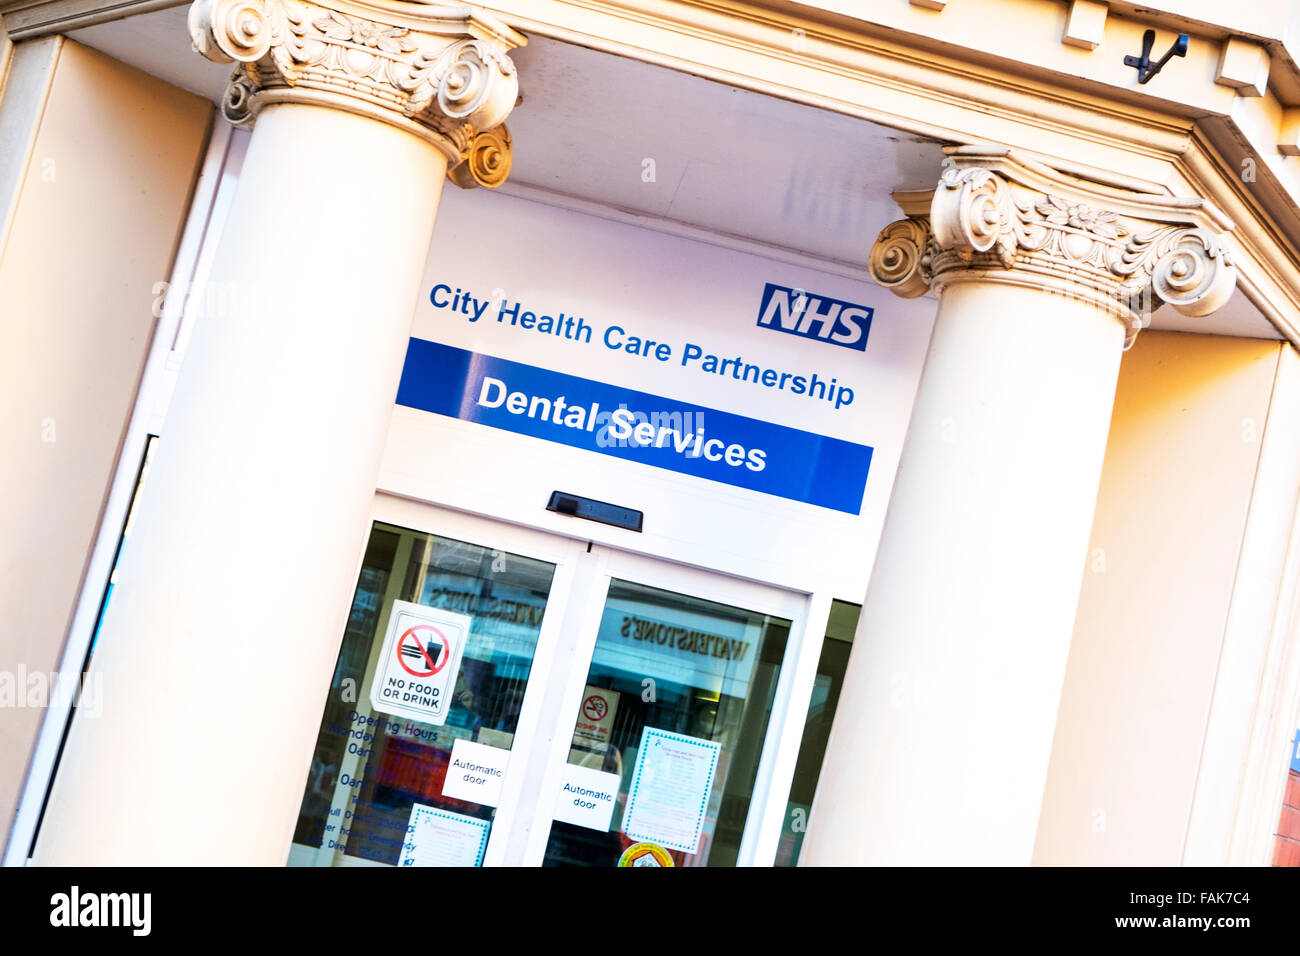 NHS dentist dental services service national health service sign health care Kingston upon Hull UK England - Stock Image